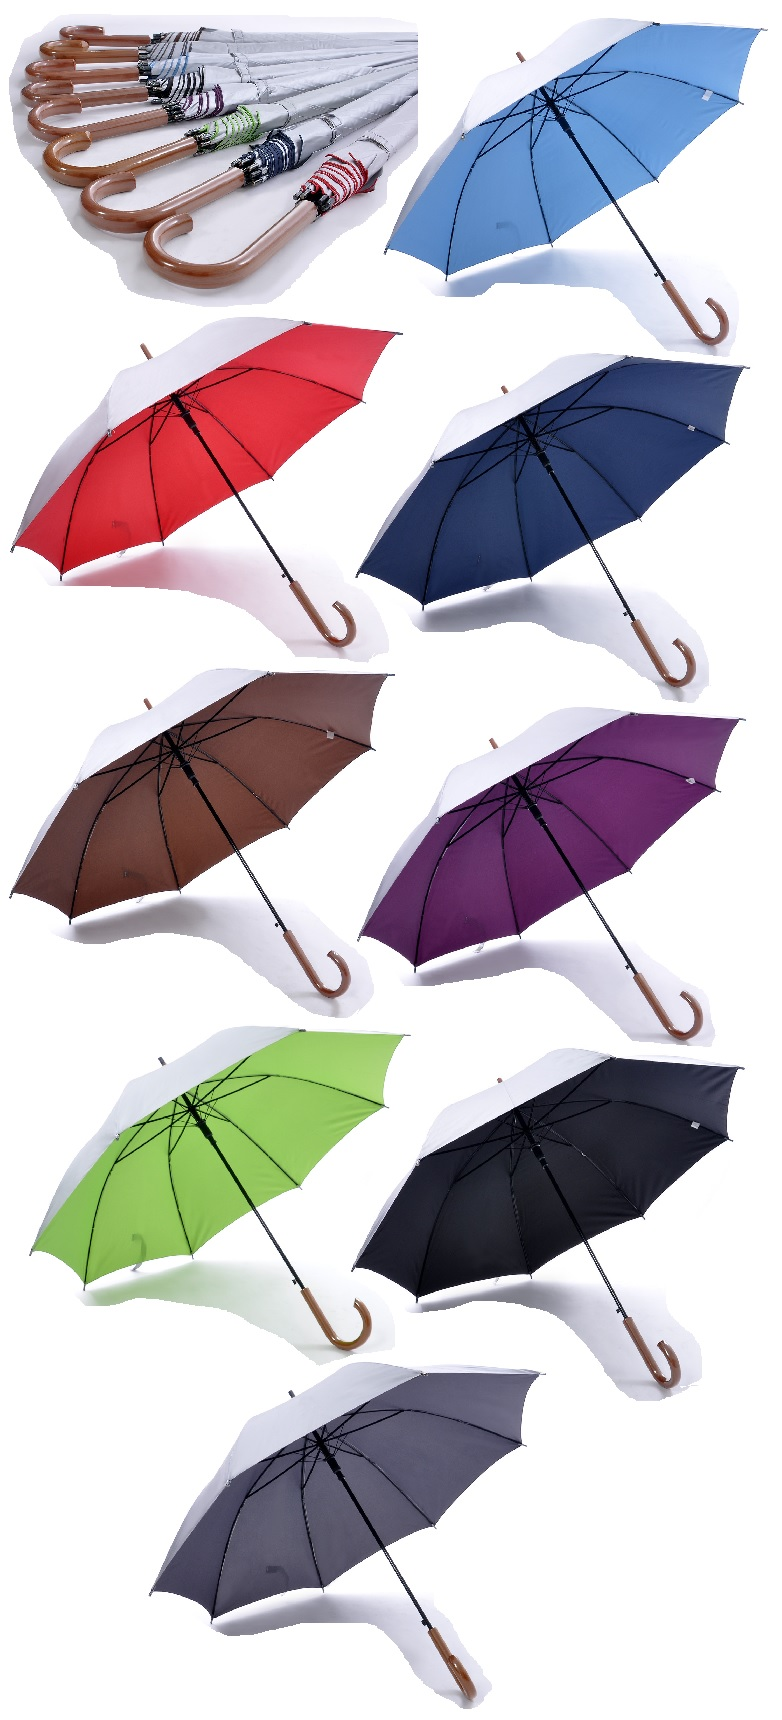 24inch Umbrella with UV Coating on exterior panels